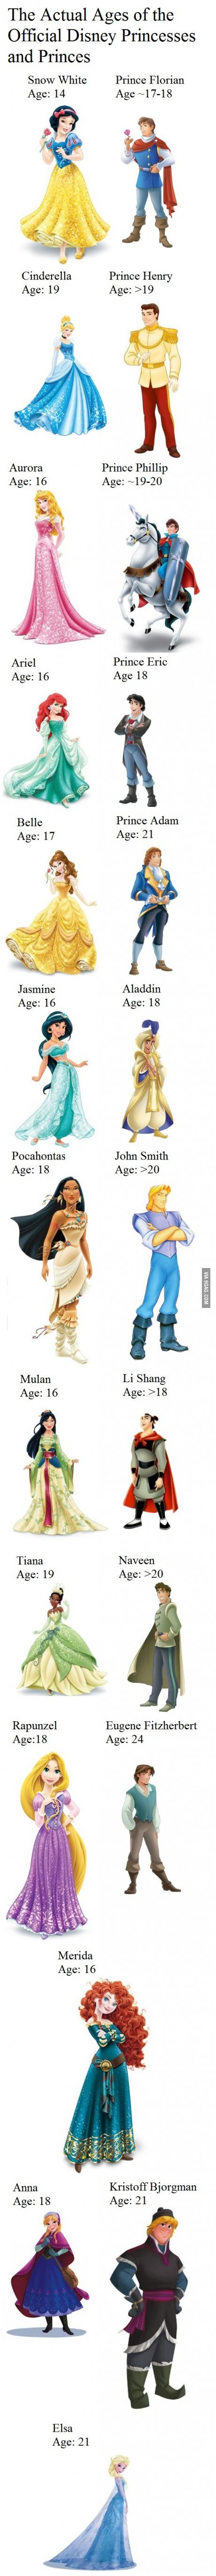 The Actual Ages of the Official Disney Princesses and Princes.